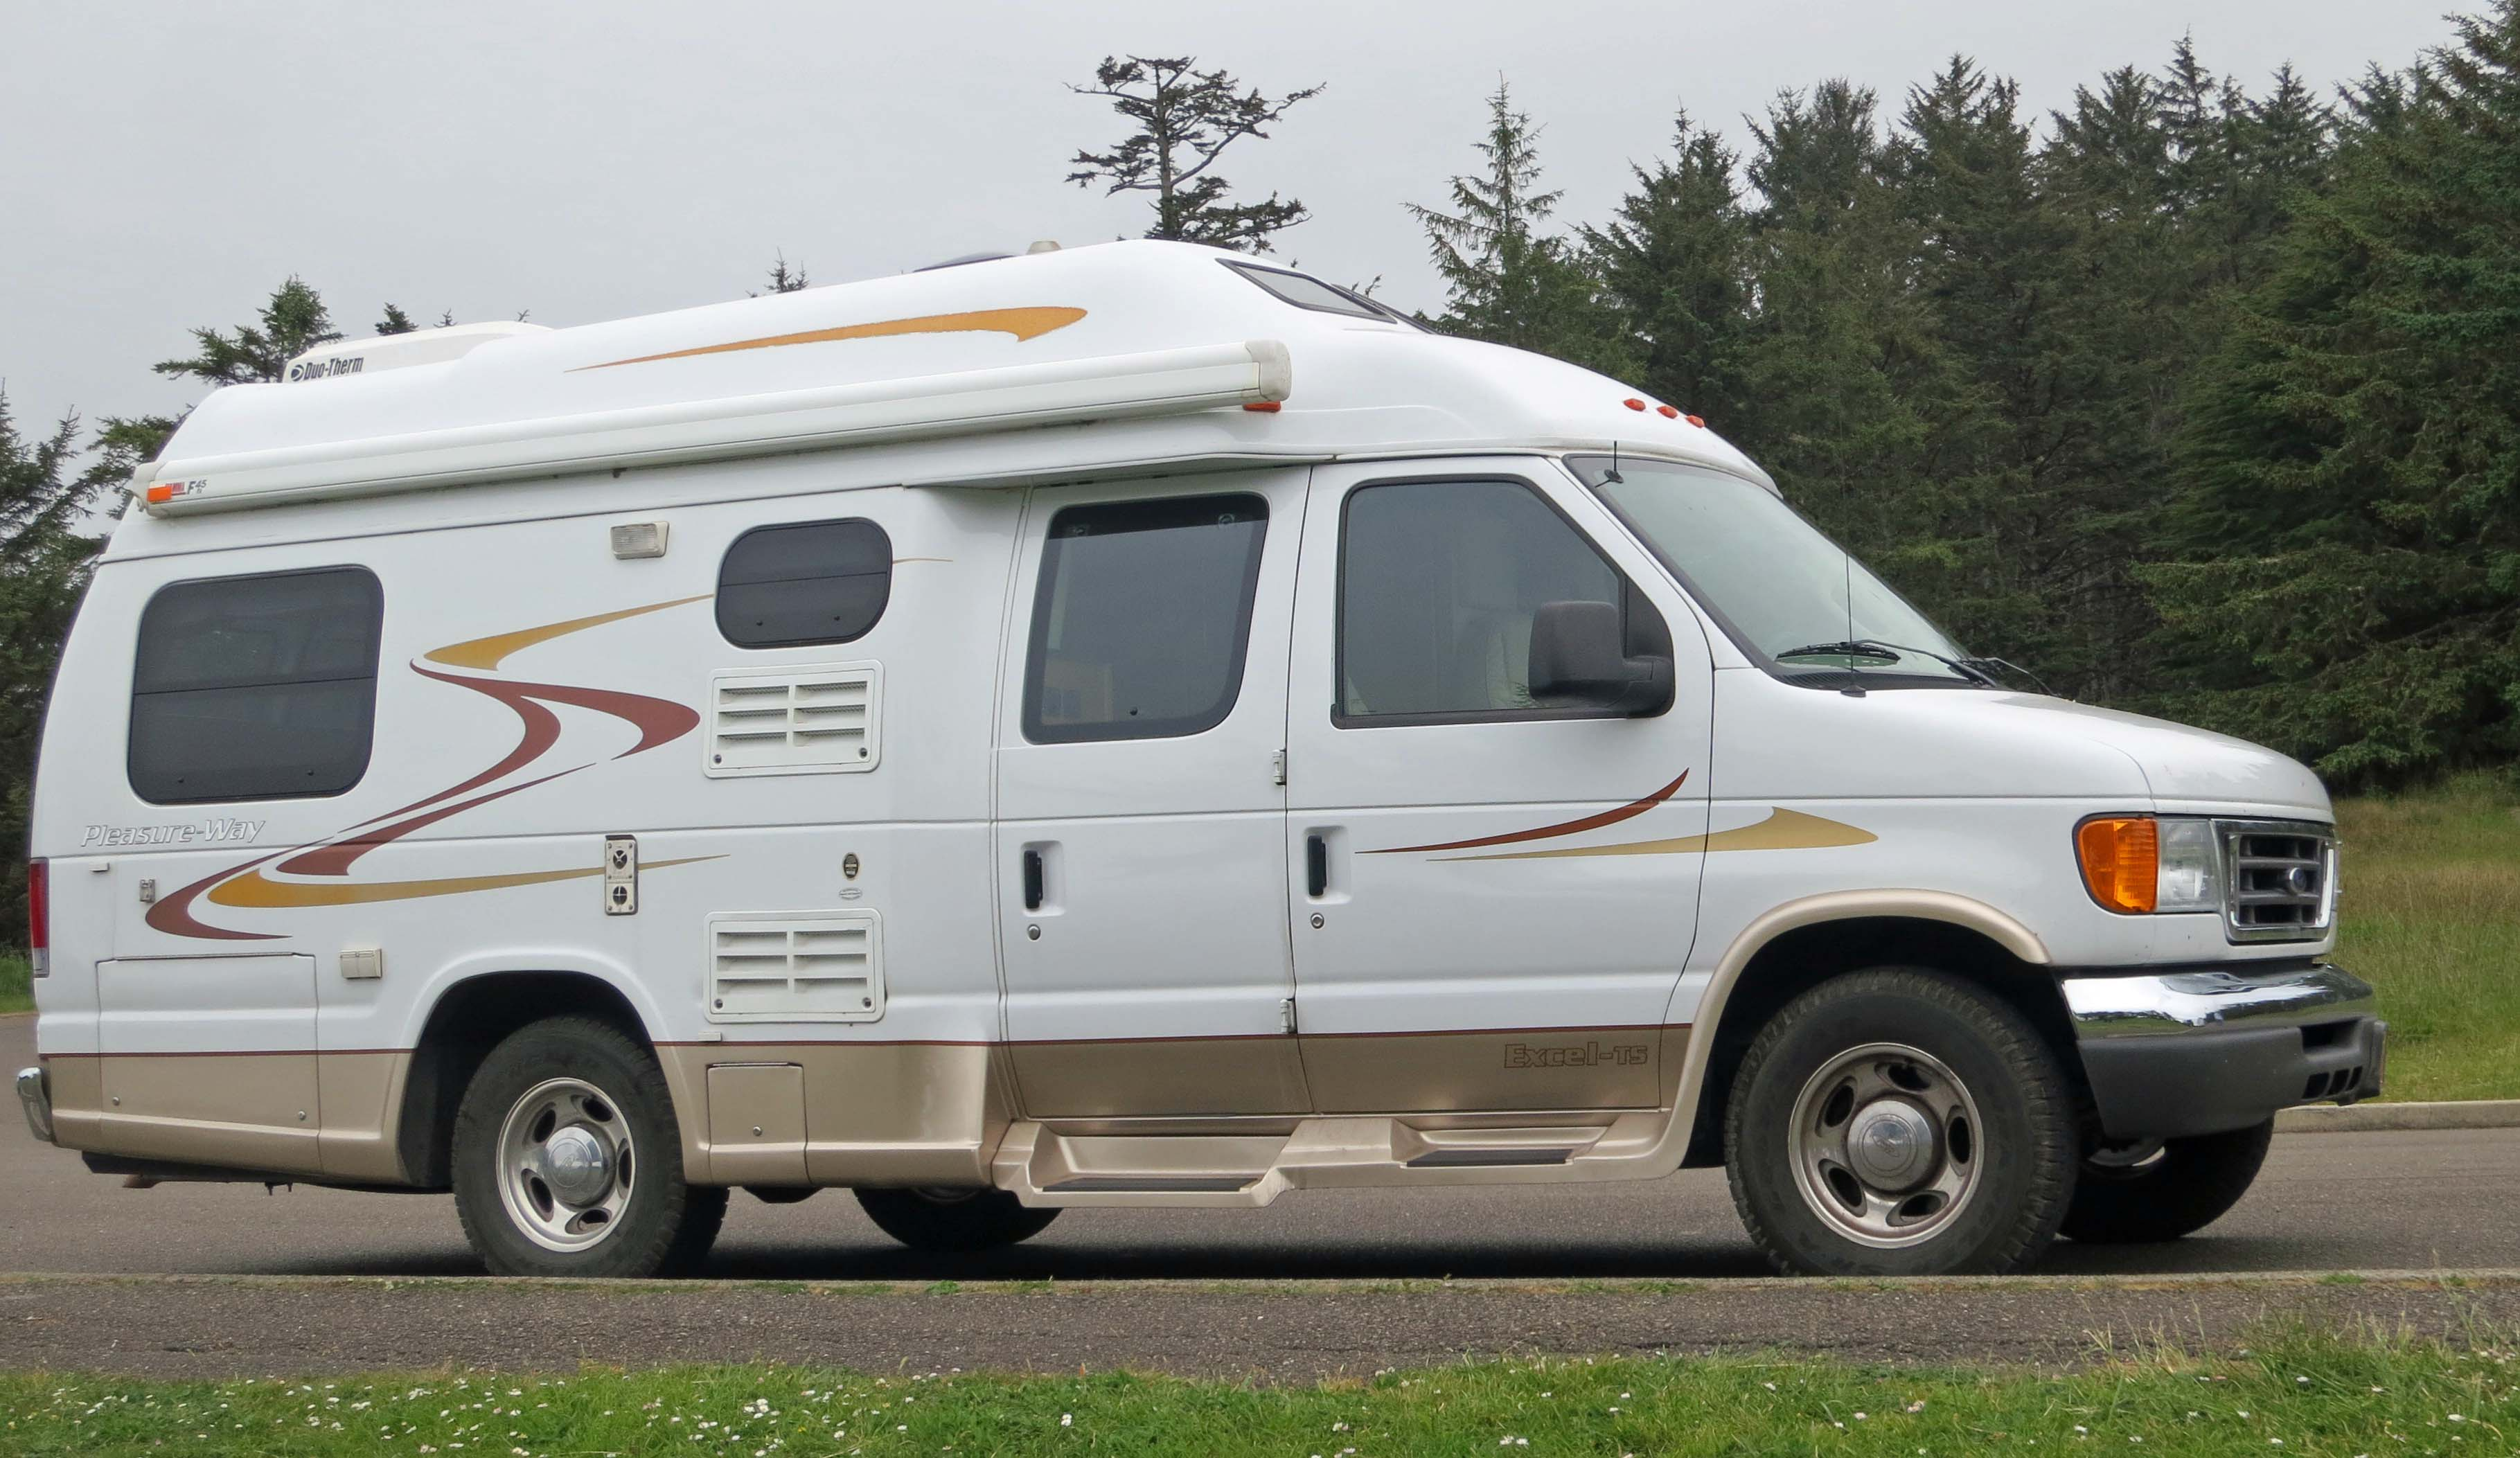 Our 22-foot van, Quivera, waits patiently for us at Cape Arago, just south of Sunset Bay, Oregon.